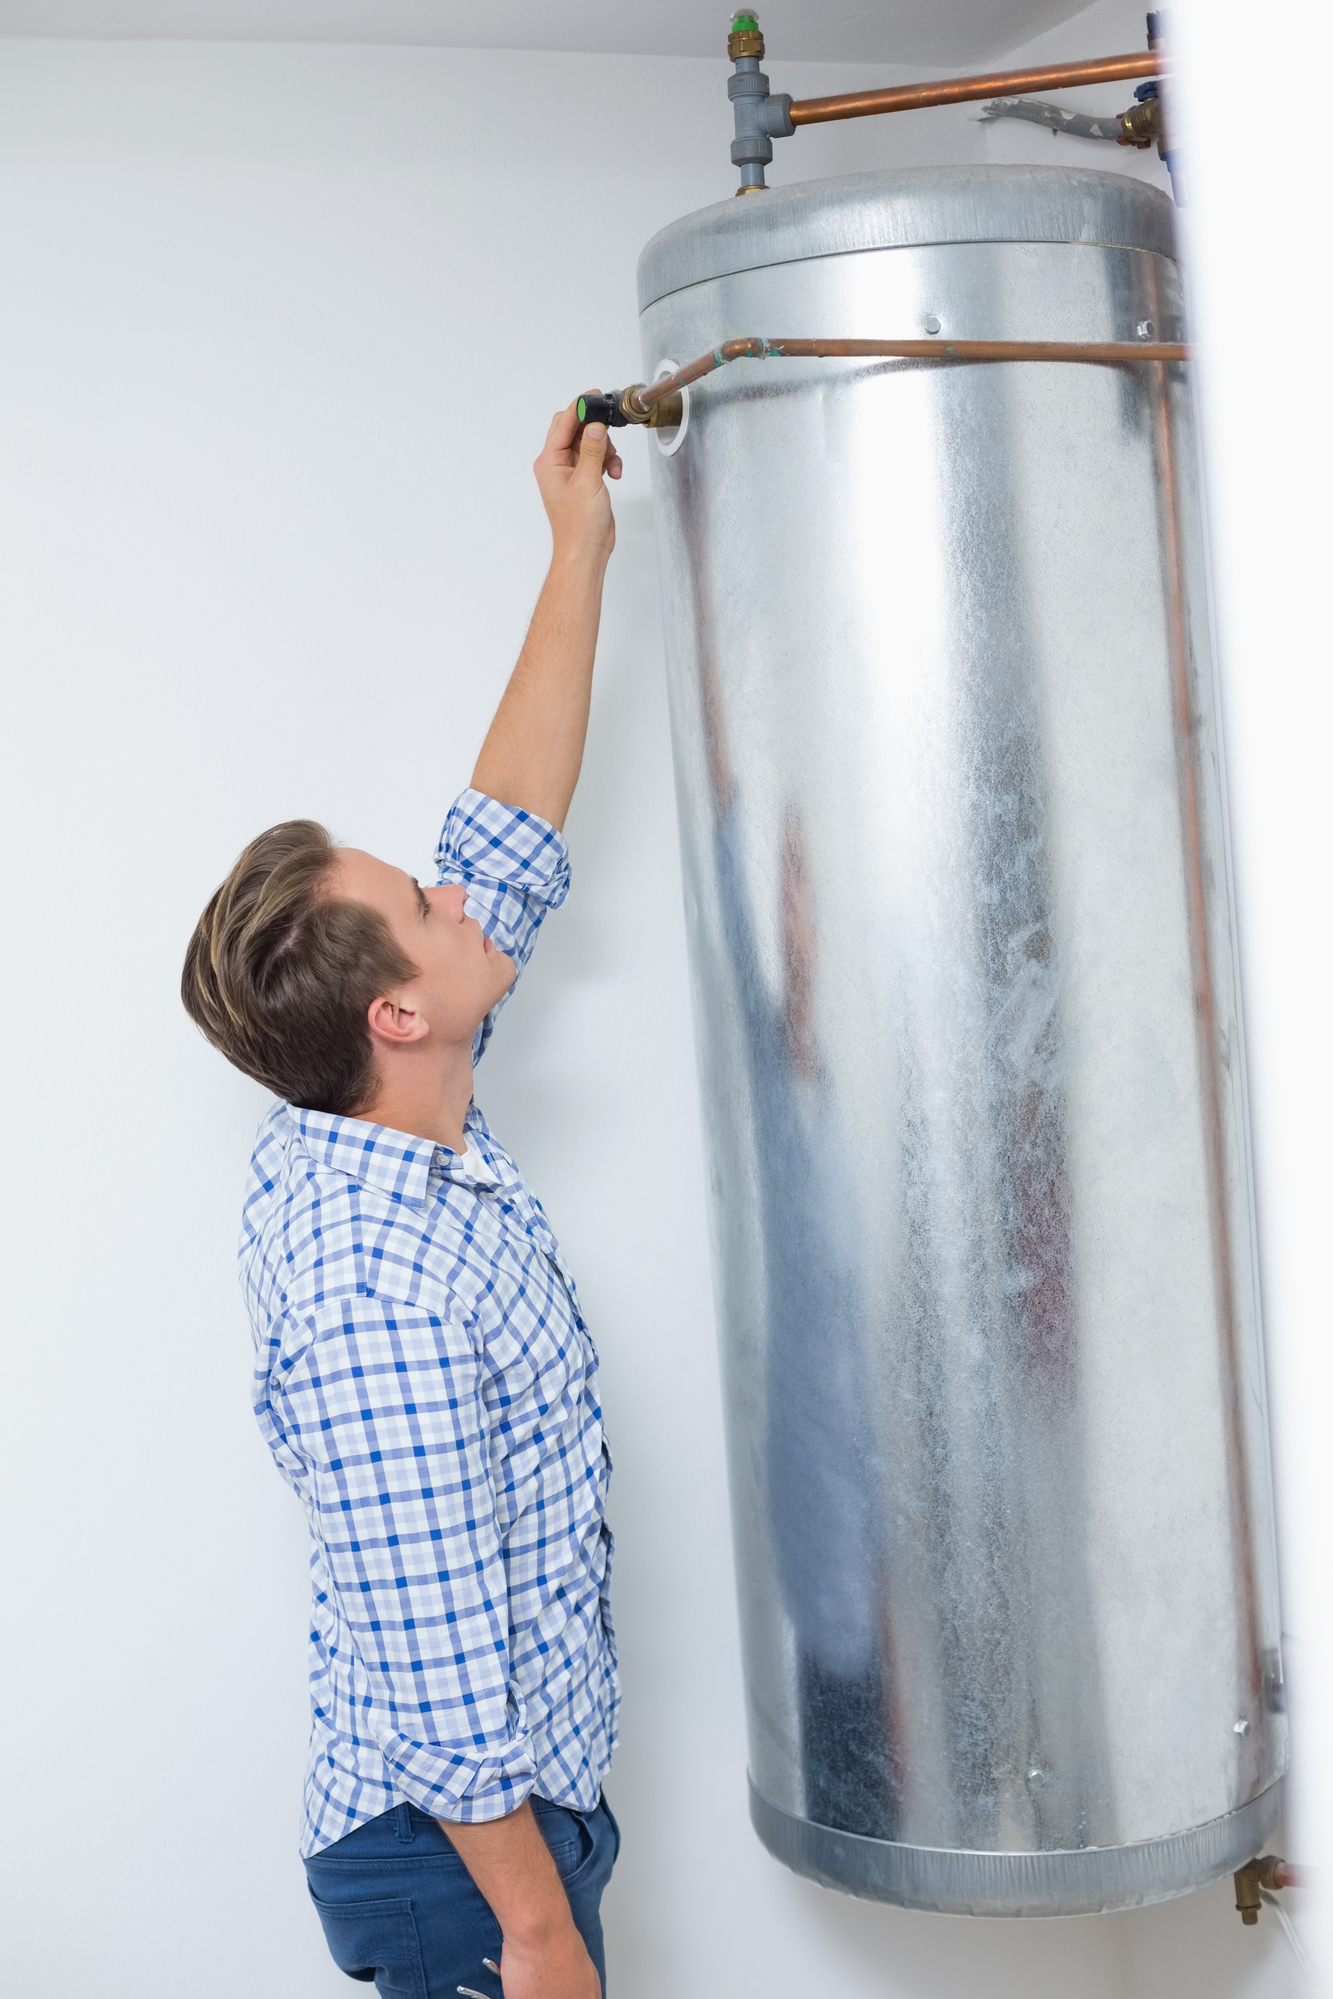 Technician servicing a hot water heater